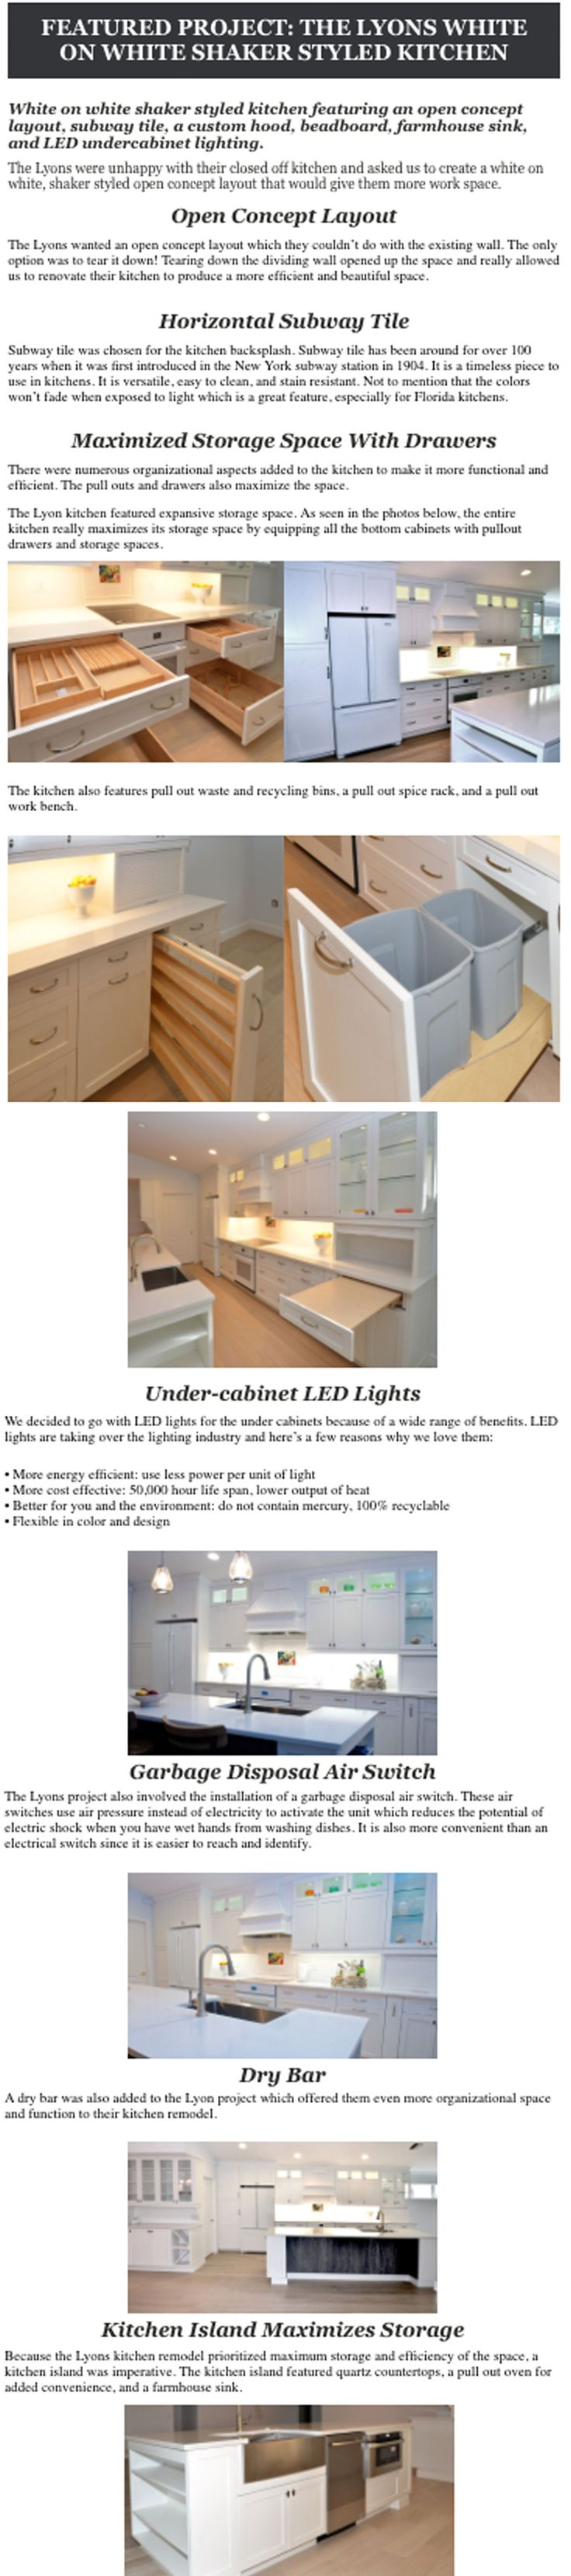 White on white shaker styled kitchen cabinets, custom hood, pull out work space, pull out drawers, wet bar, shaker styled cabinets, shaker, shaker style.